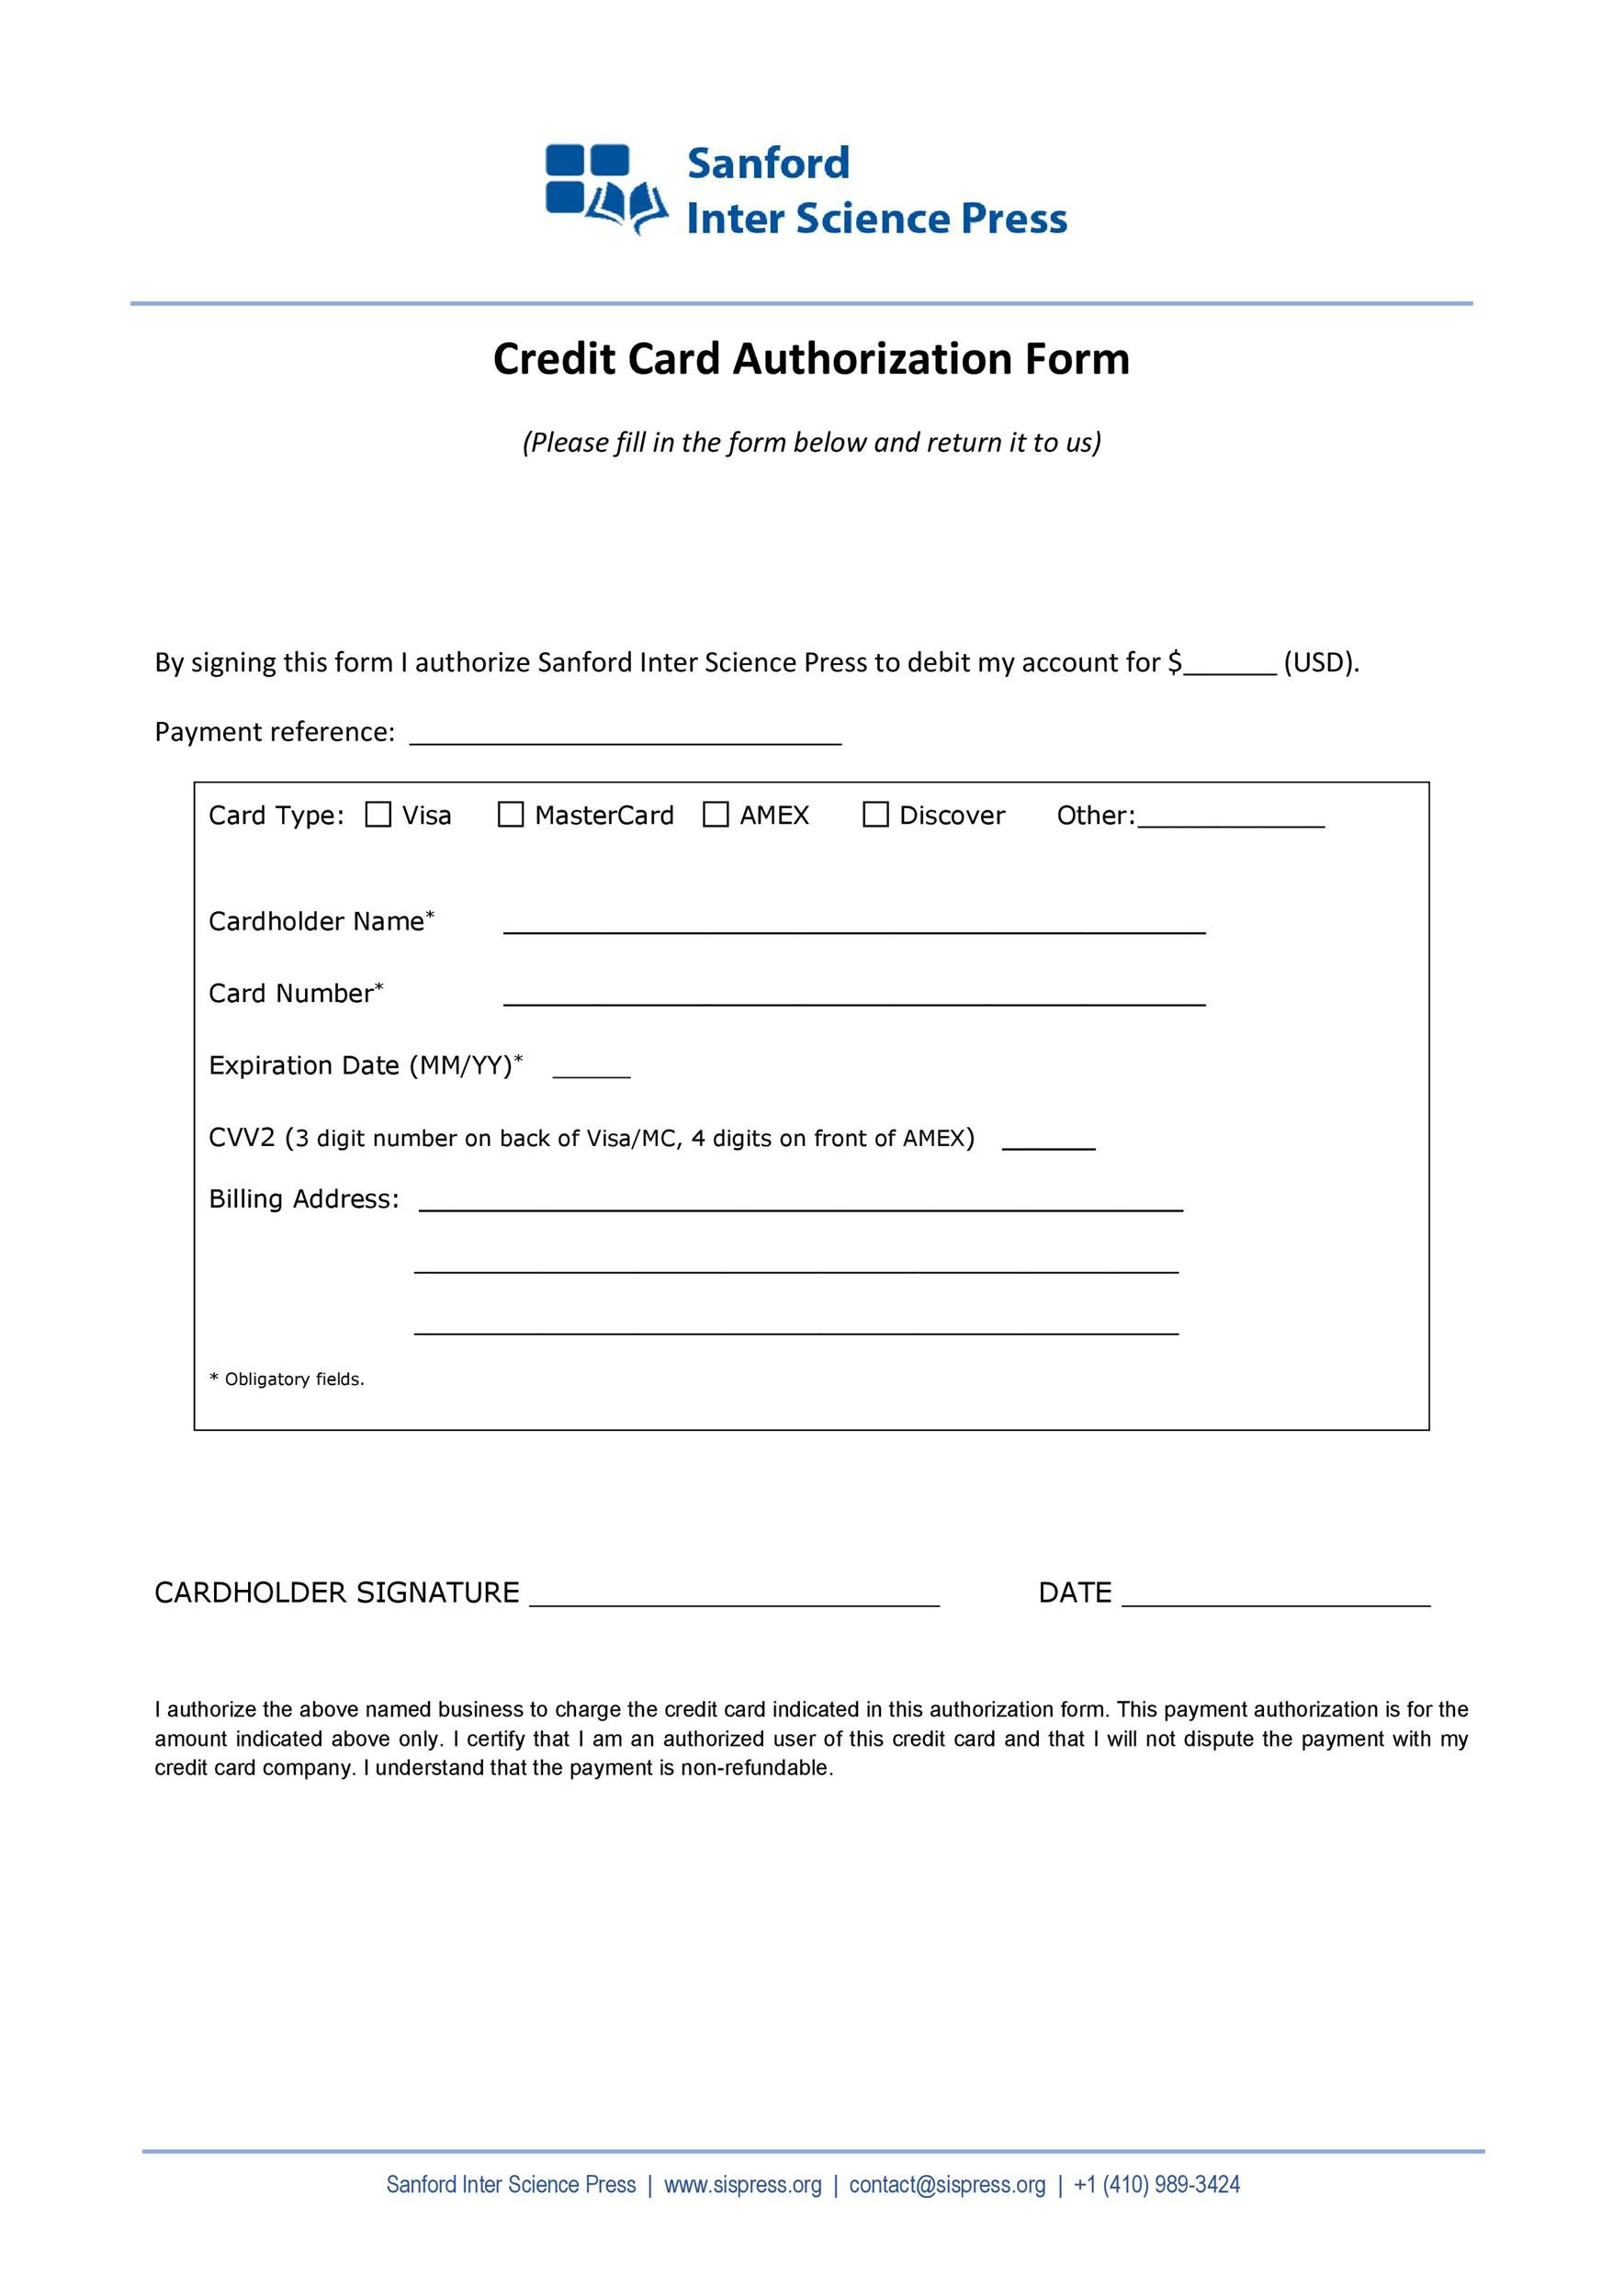 007 Formidable Credit Card Form Template Html Idea  Example Payment CsFull